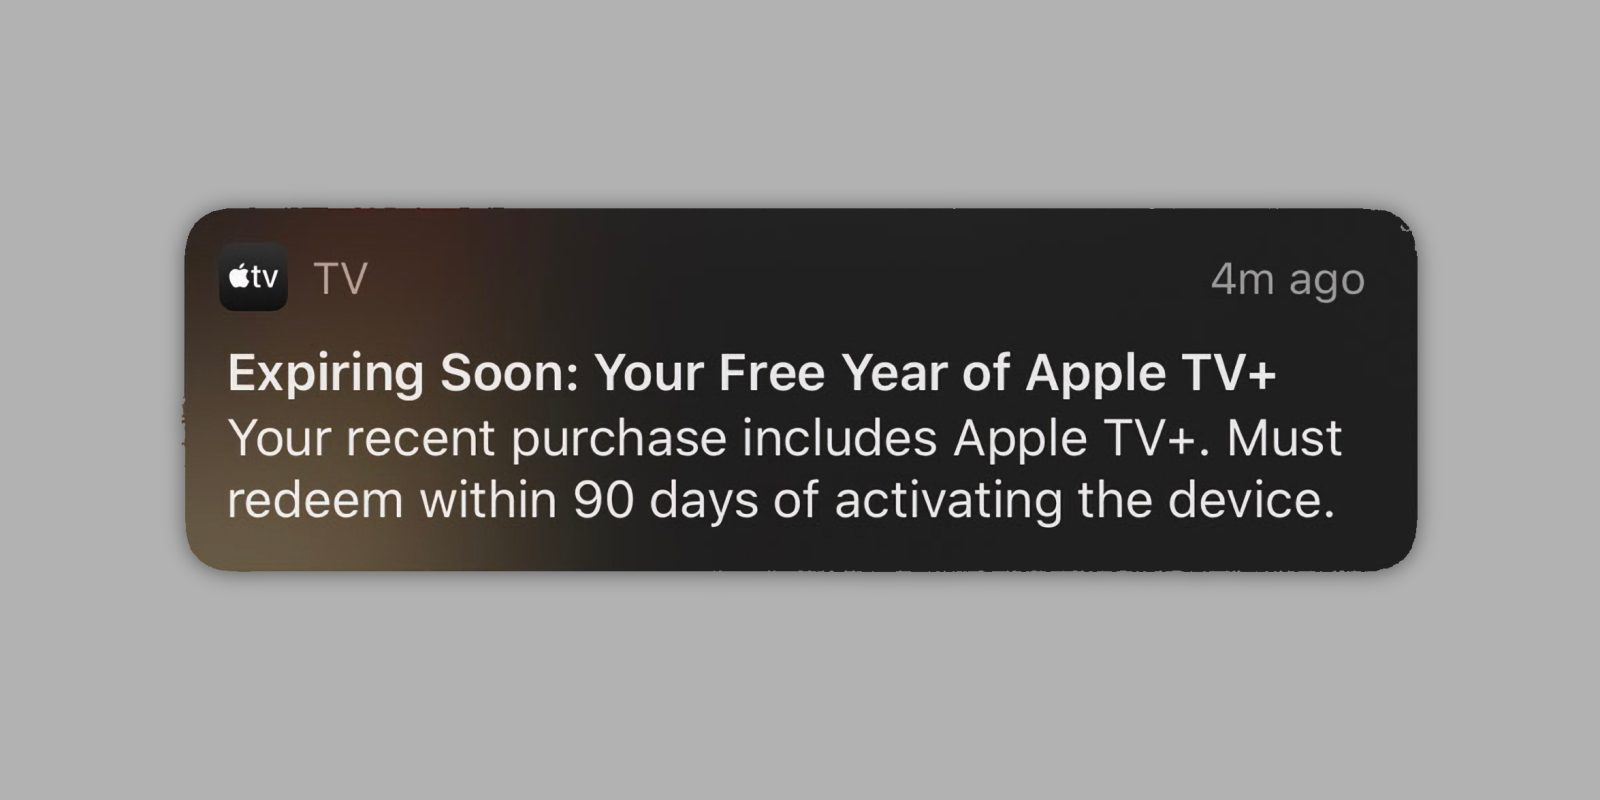 Apple reminding customers to redeem their free year of Apple TV+ as offer deadline approaches